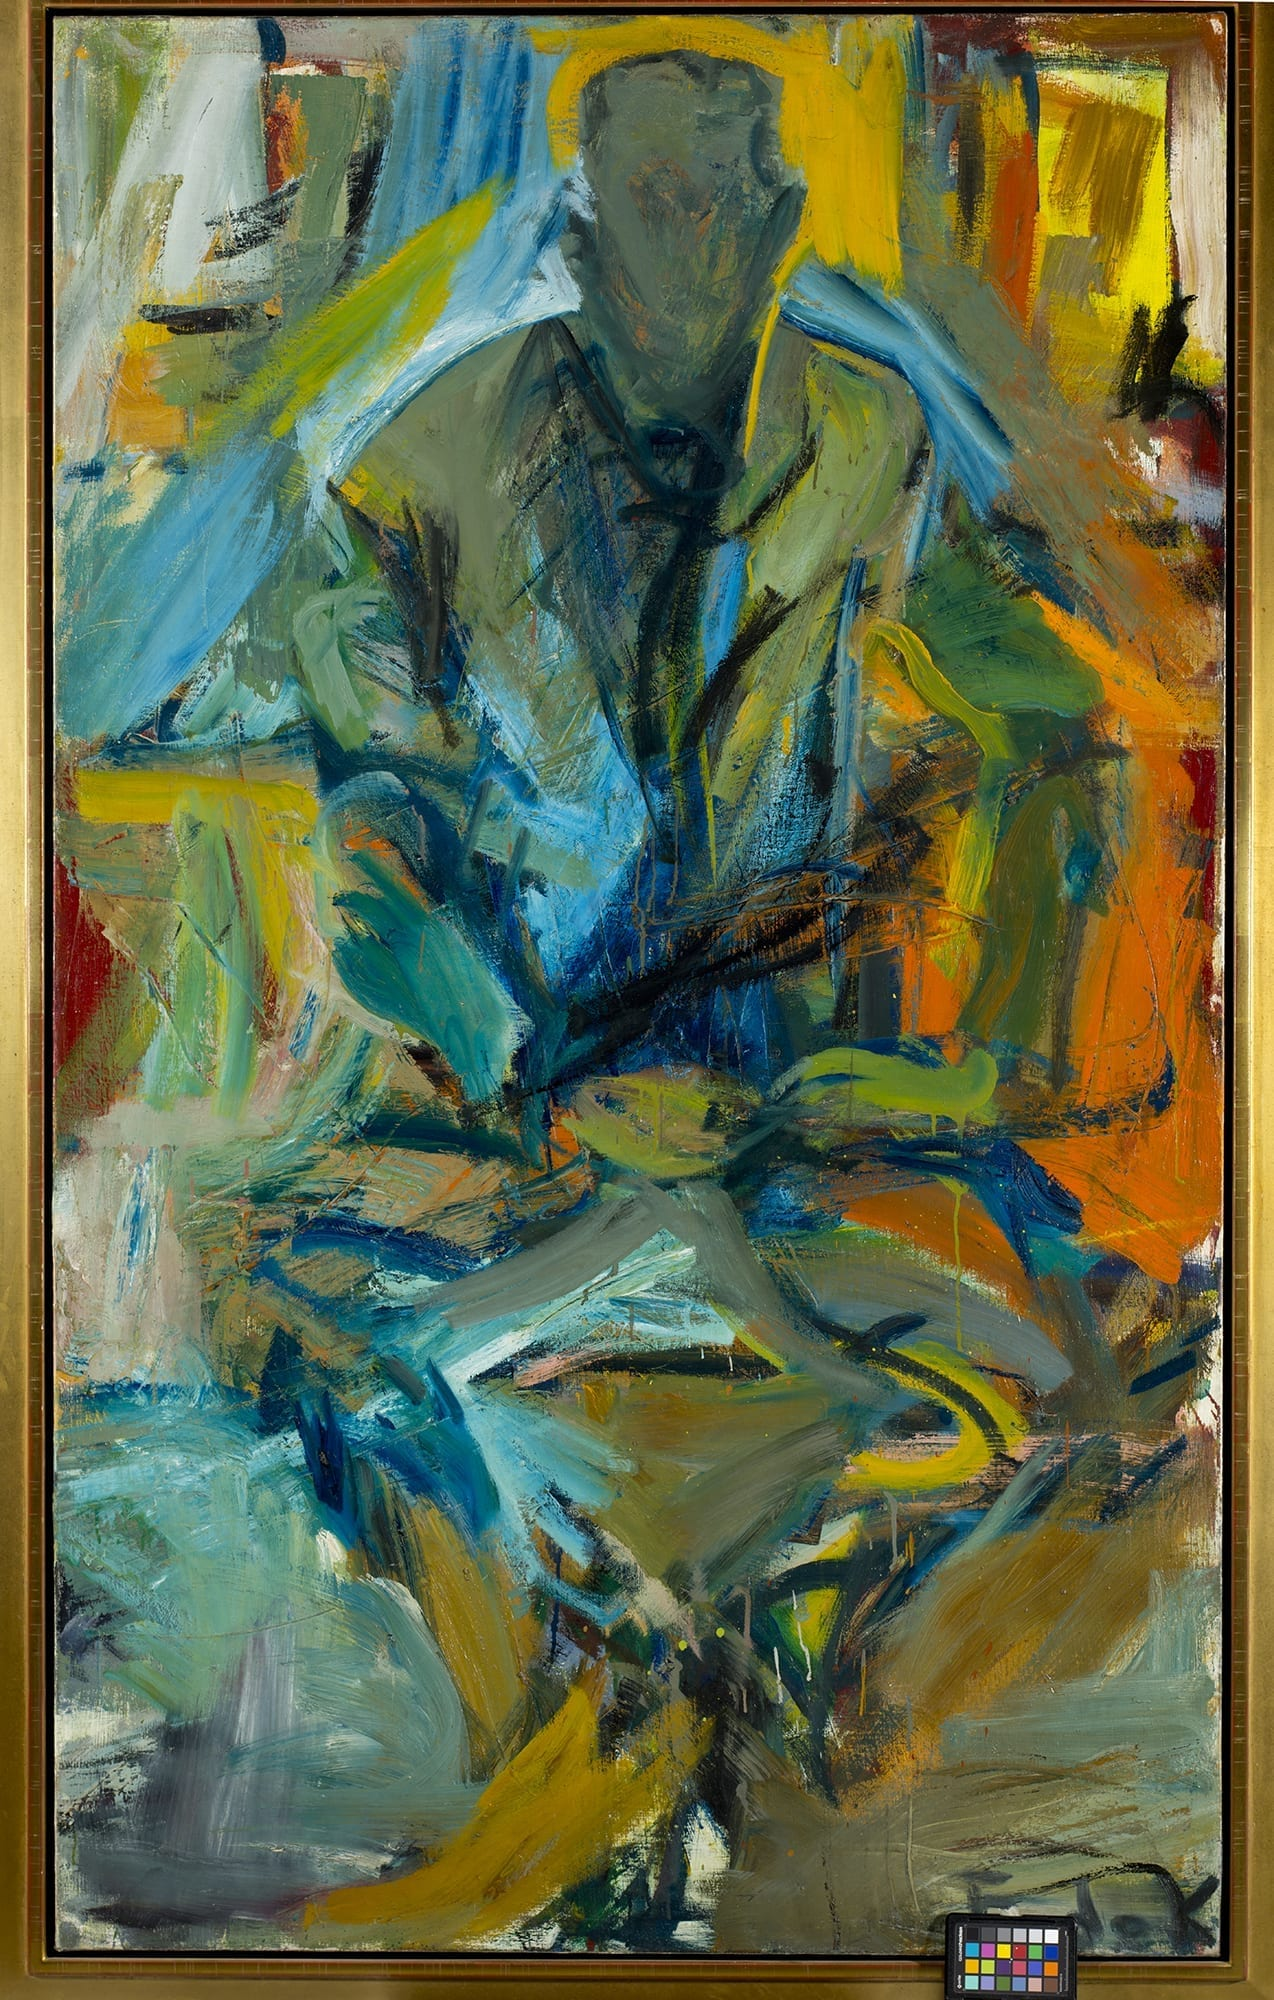 bill at st  mark u0026 39 s  elaine de kooning  1956  oil on canvas  72x44 u0026quot